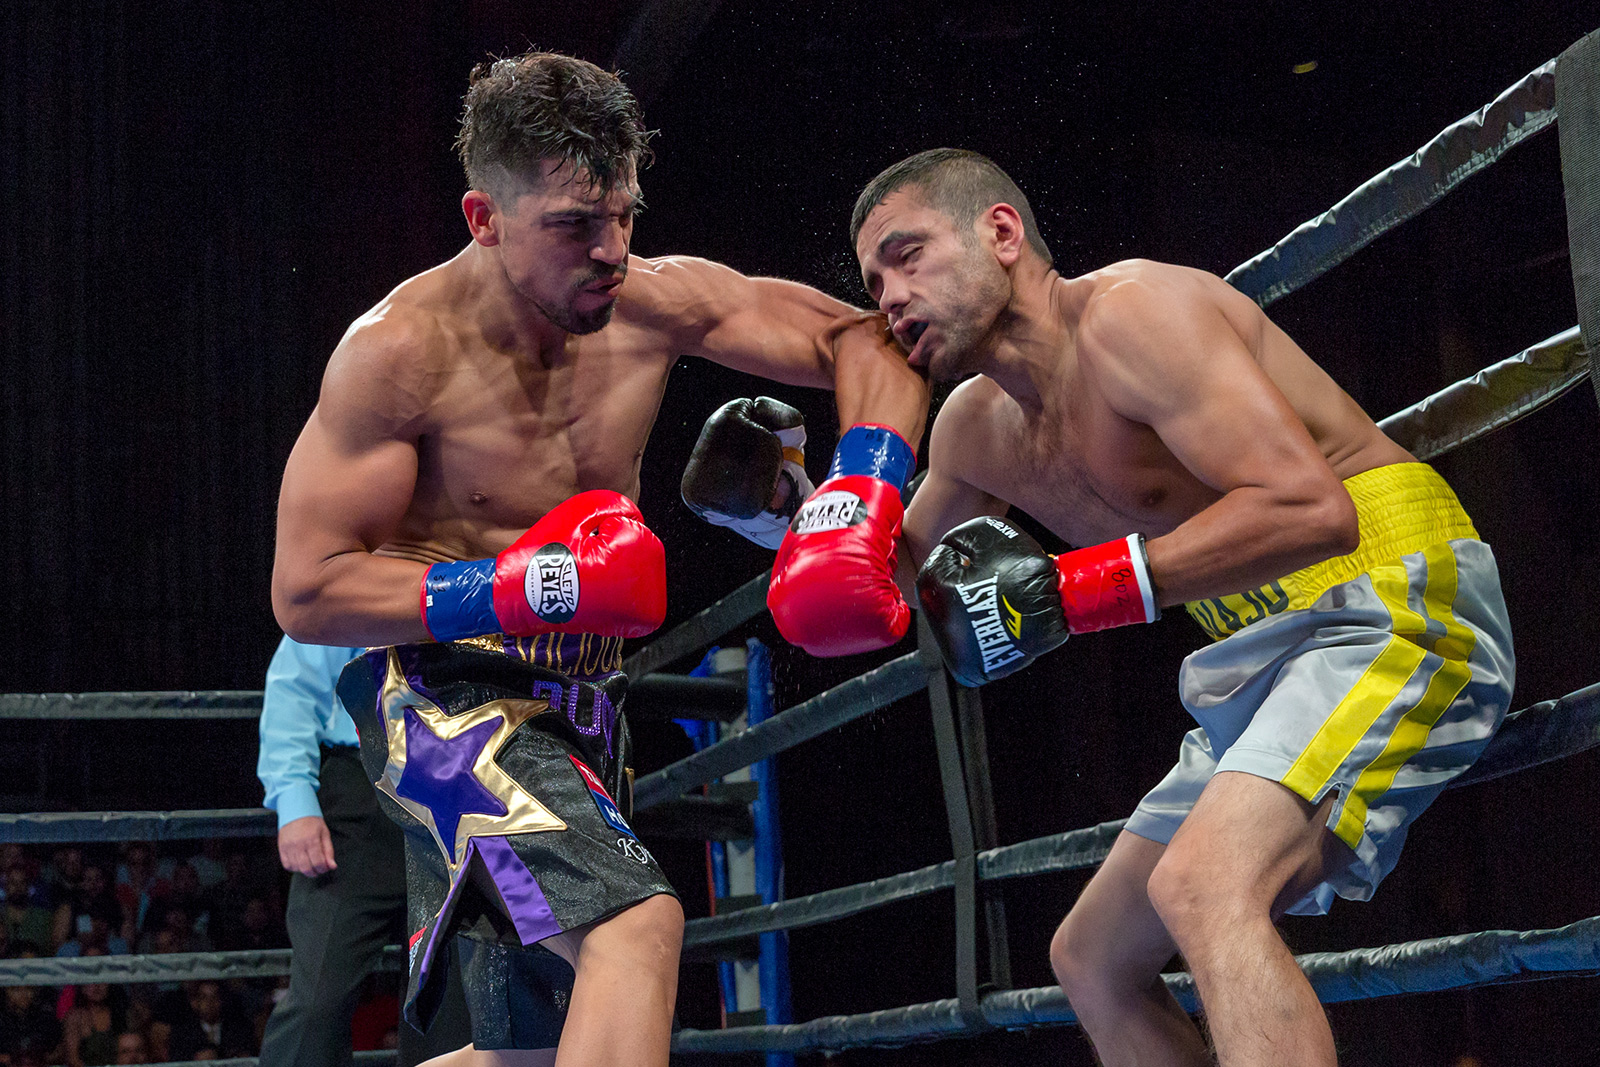 Victor Ortiz Stops Saul Corral After 15 Month Layoff The